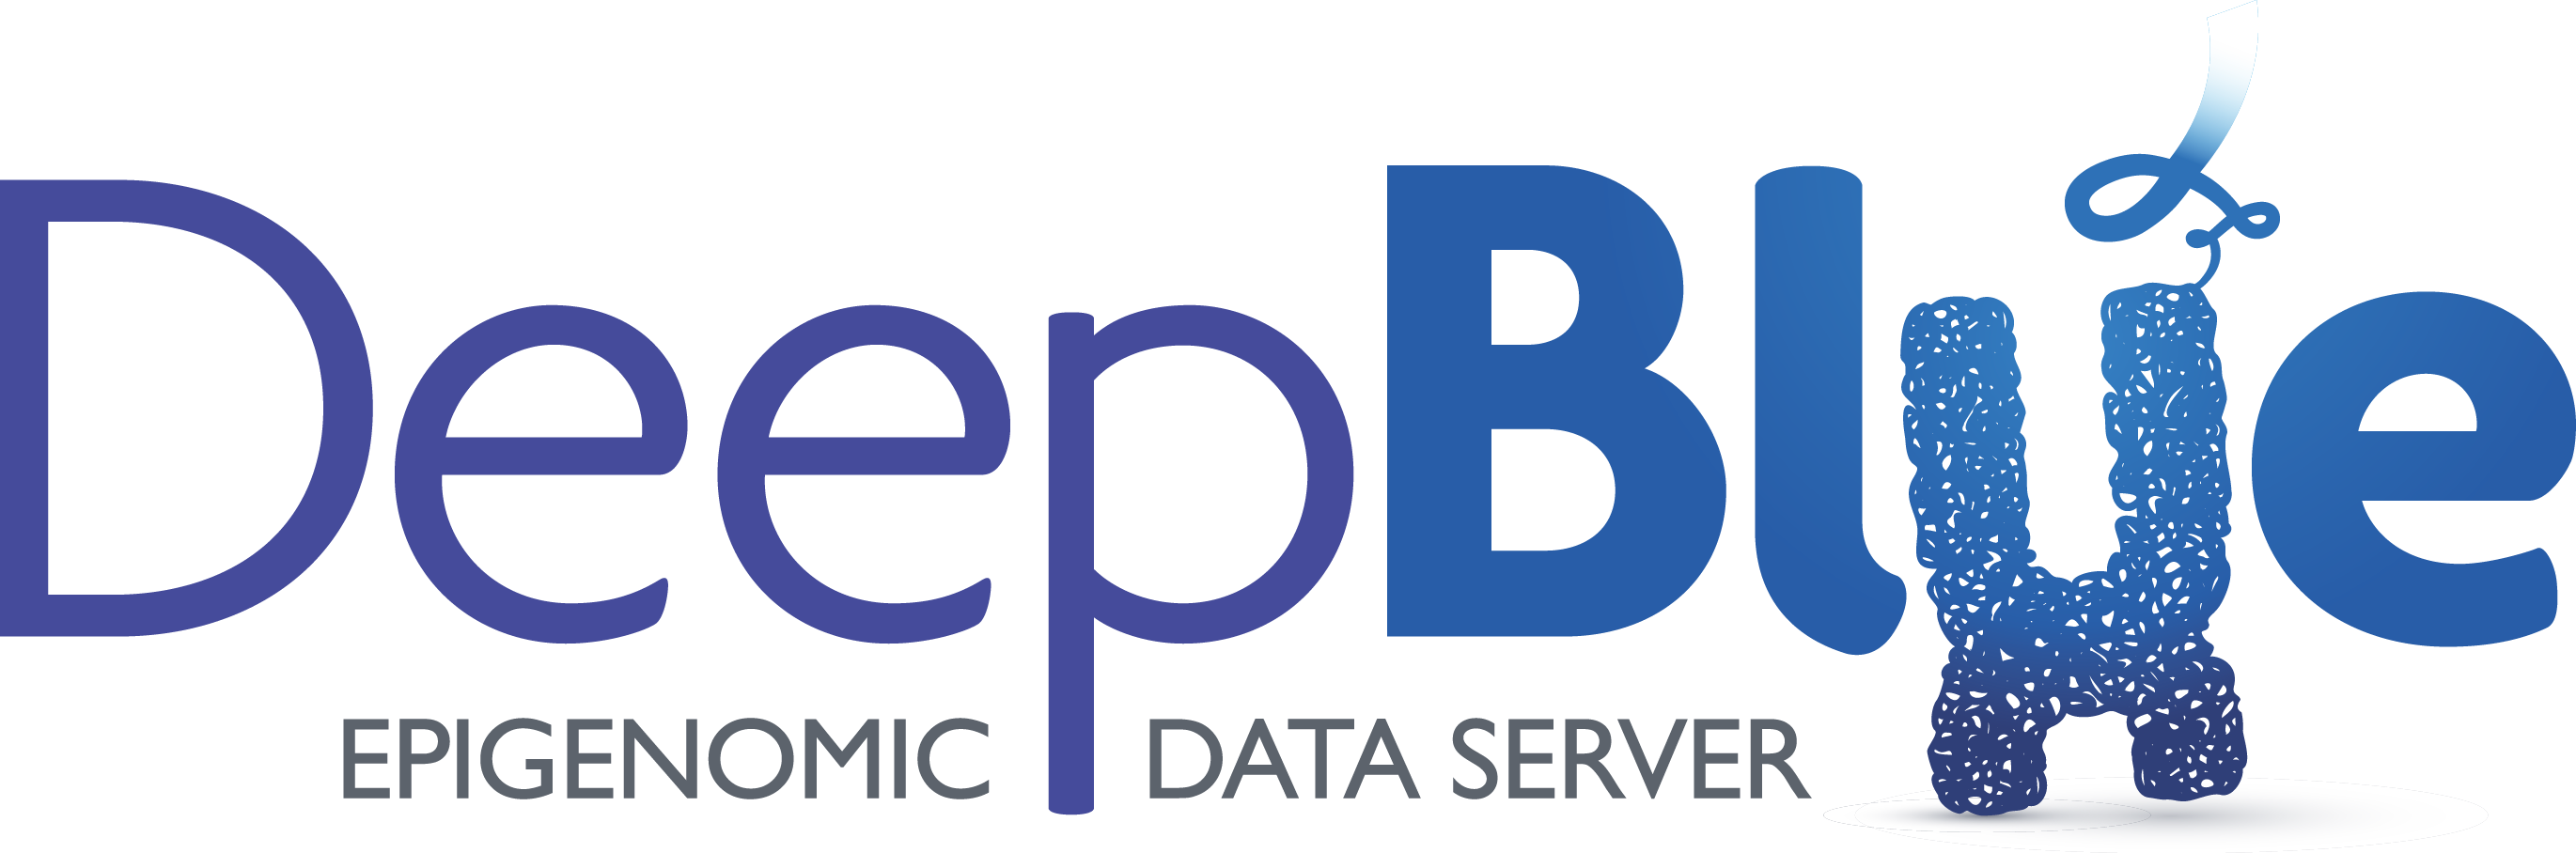 DeepBlue Epigenomic Data Server